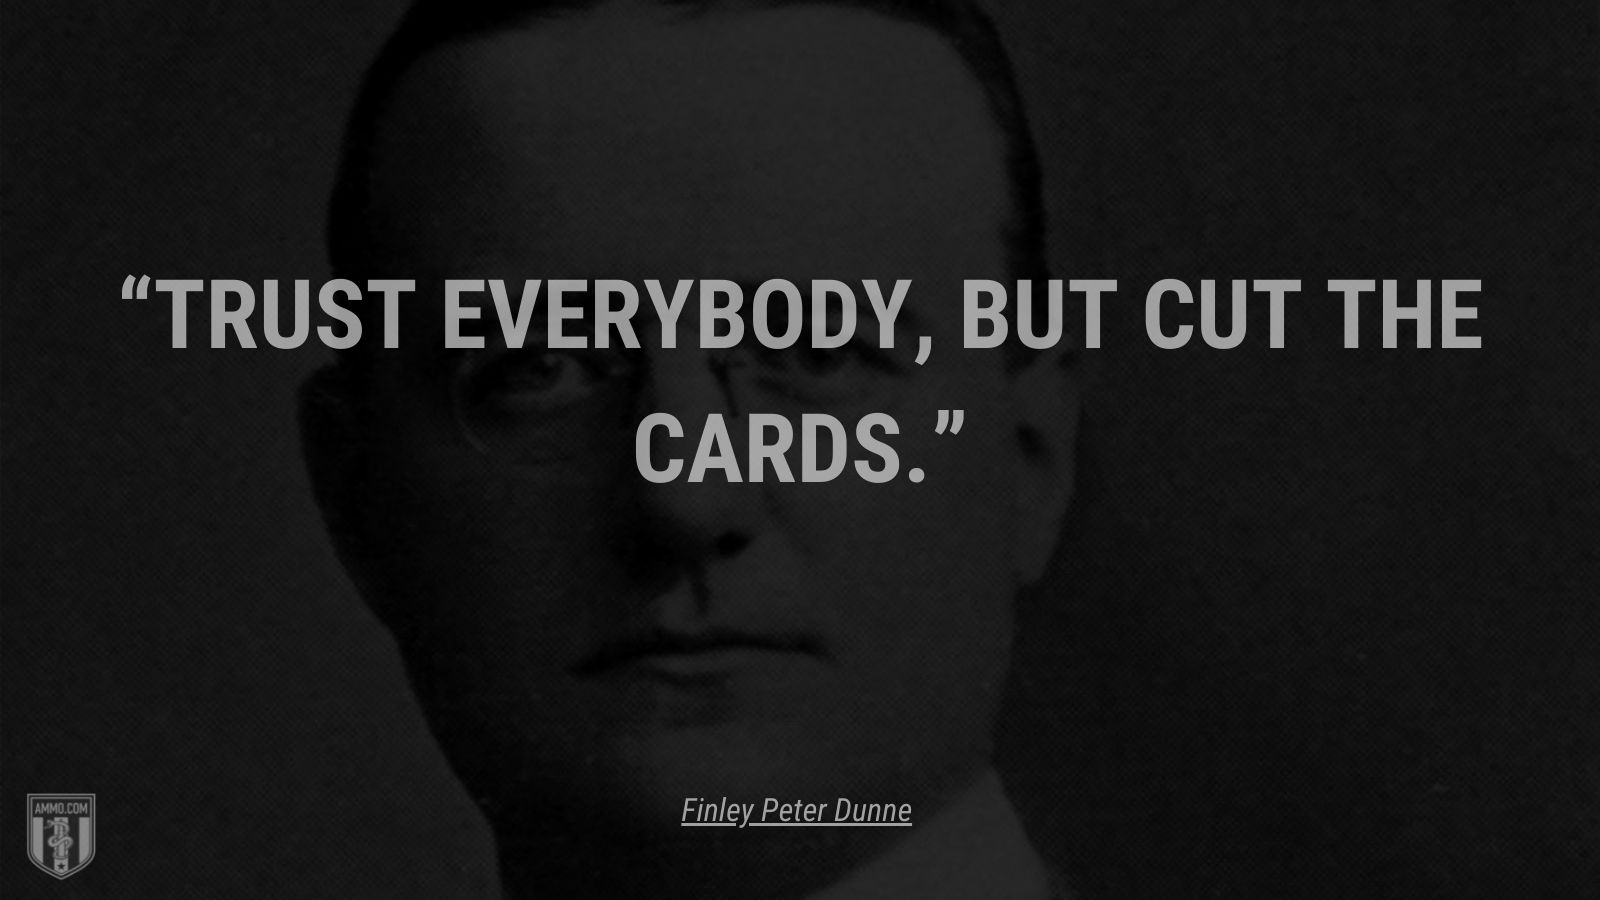 """""""Trust everybody, but cut the cards."""" - Finley Peter Dunne"""